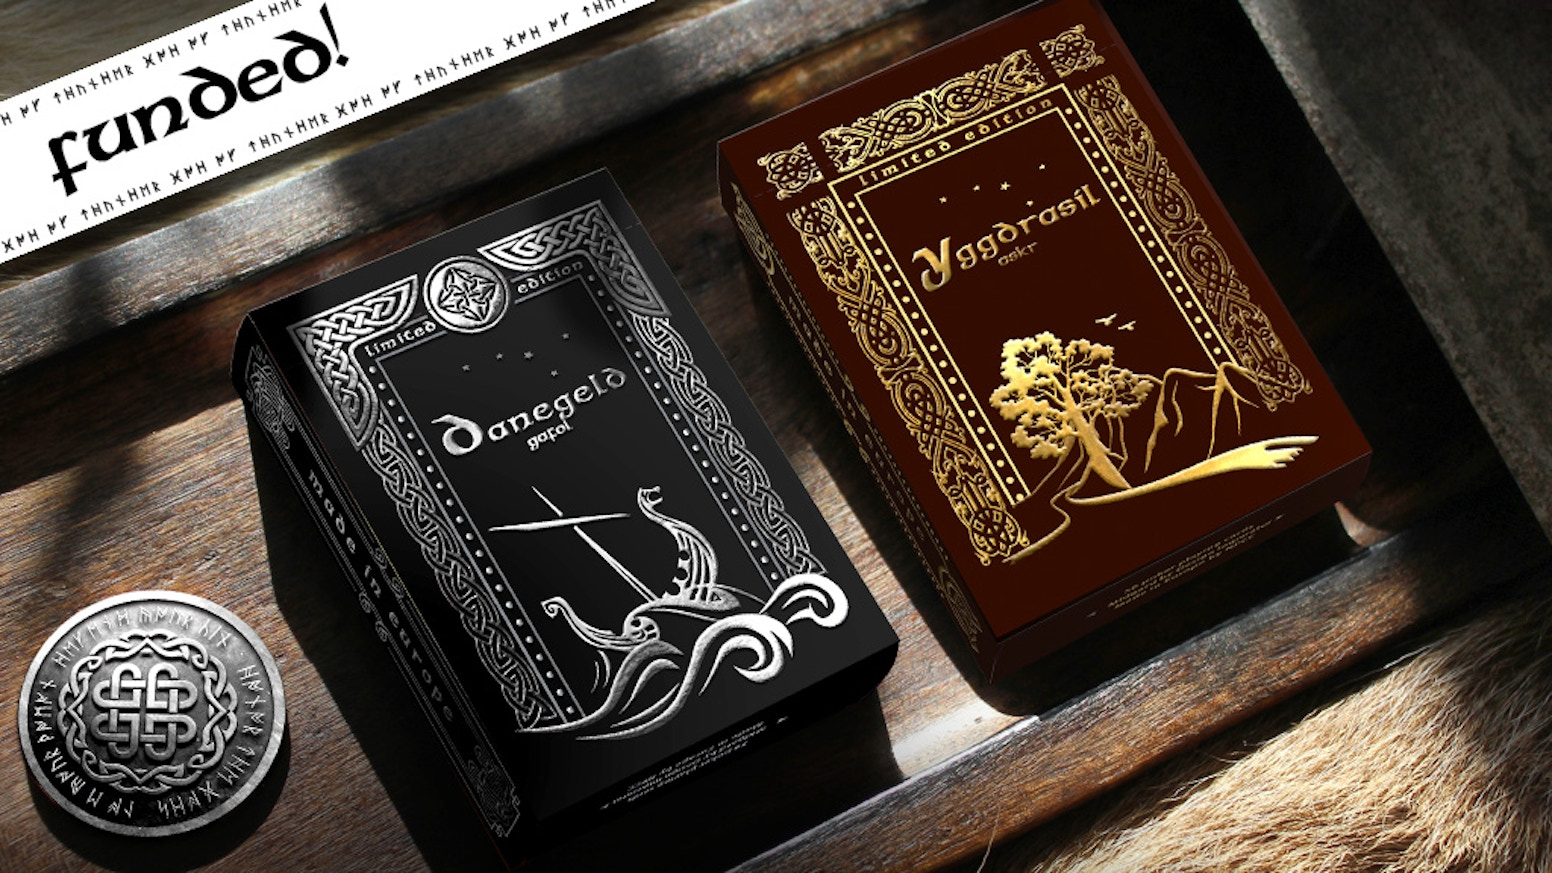 Norse playing cards designed in the heart of Scandinavia. Manufactured in two limited edition print runs with deluxe features.